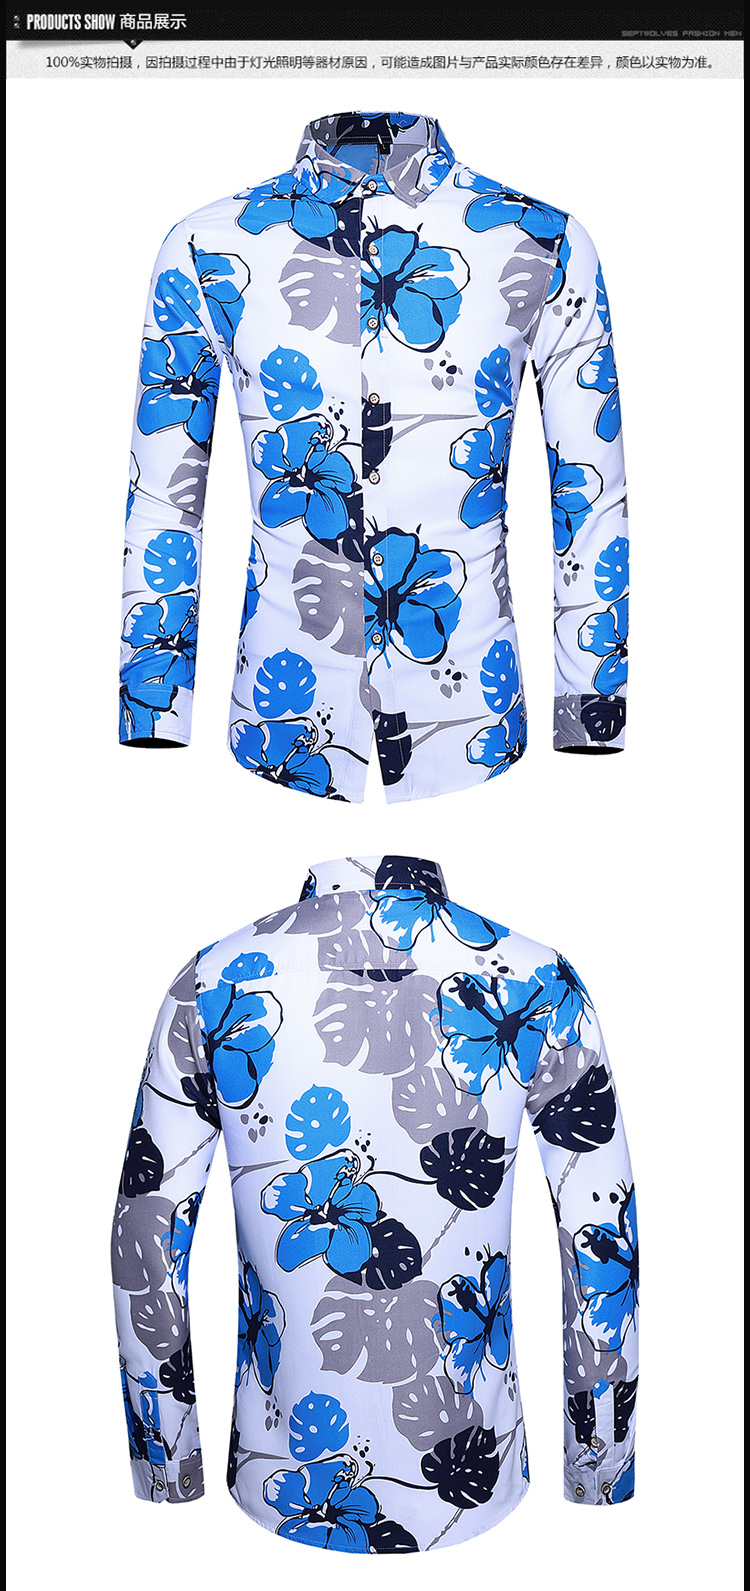 HTB1HtY3XuH2gK0jSZFEq6AqMpXaN - Casuals Shirt Men Autumn New Arrival Personality Printing Long Sleeve Shirts Mens Fashion Big Size Business Office Shirt 6XL 7XL